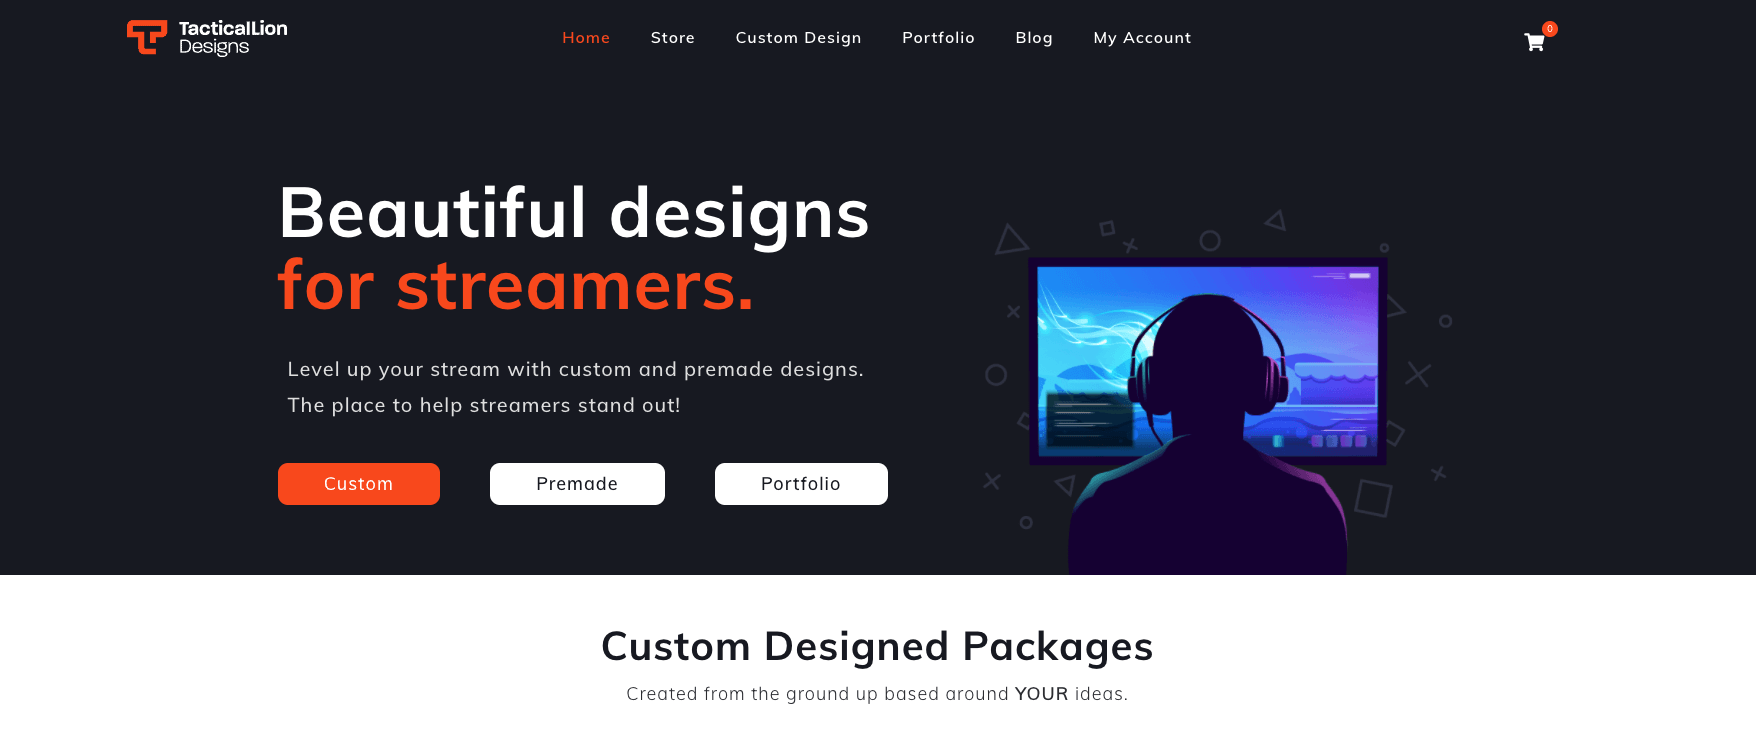 Tactical Lion Designs Homepage